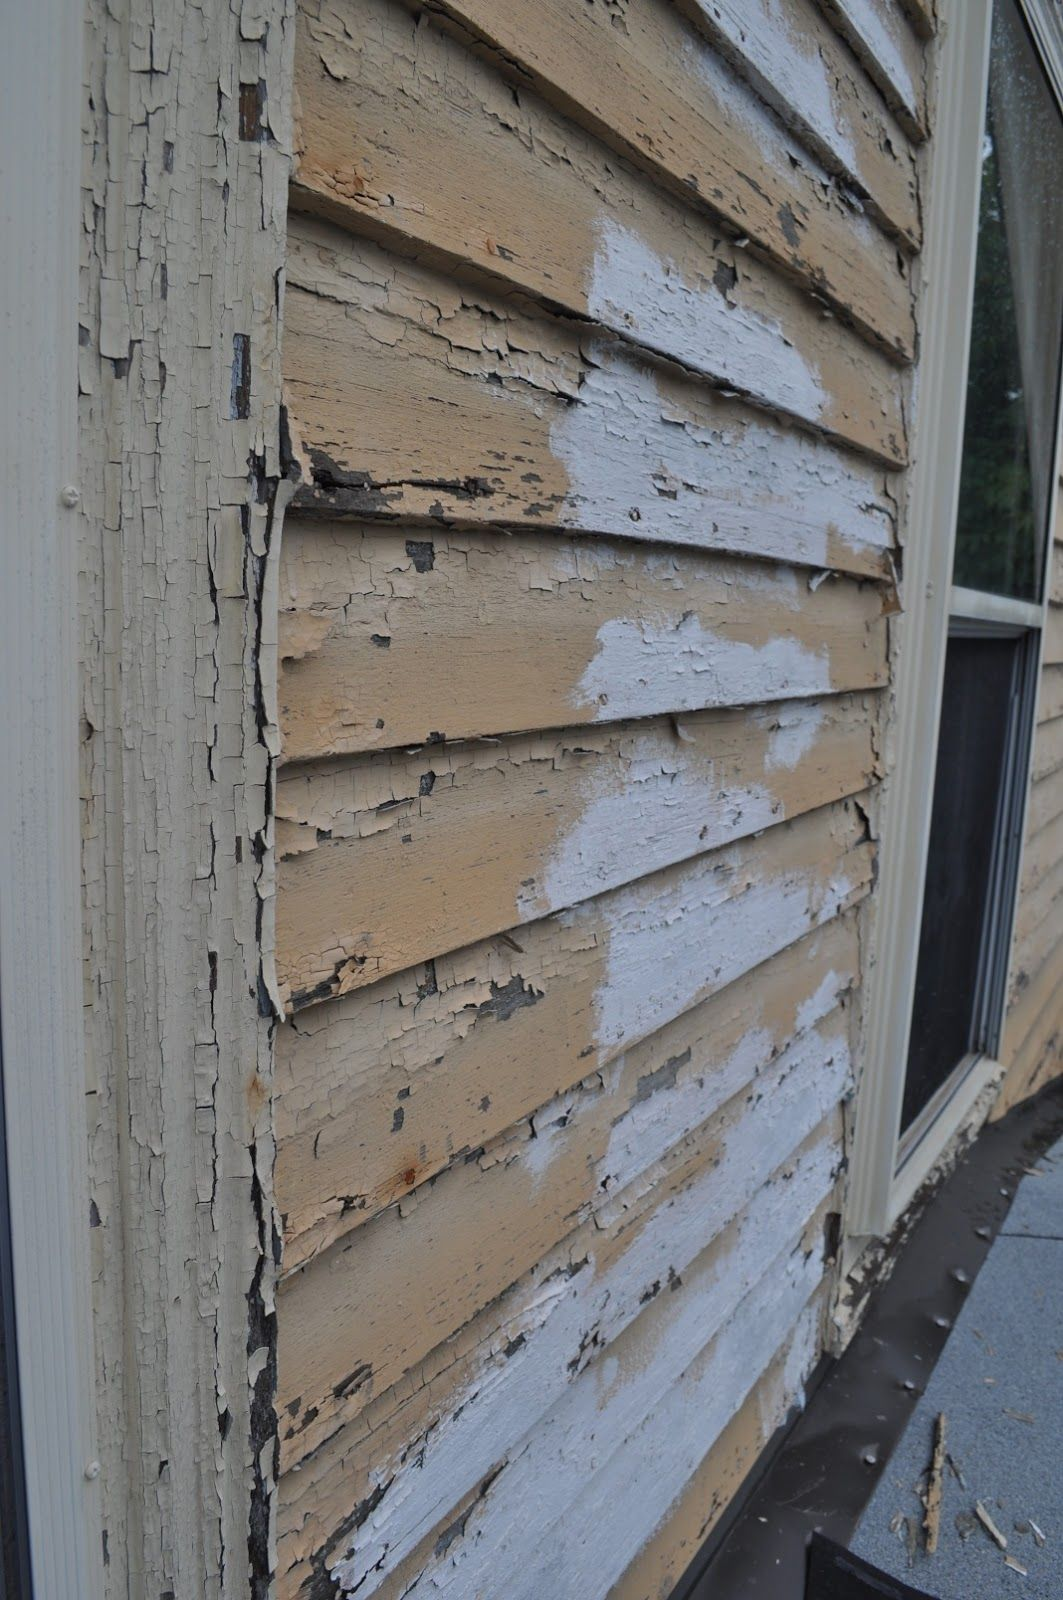 Dealing With Lead Paint The Right Way Lead Paint House Restoration Lead